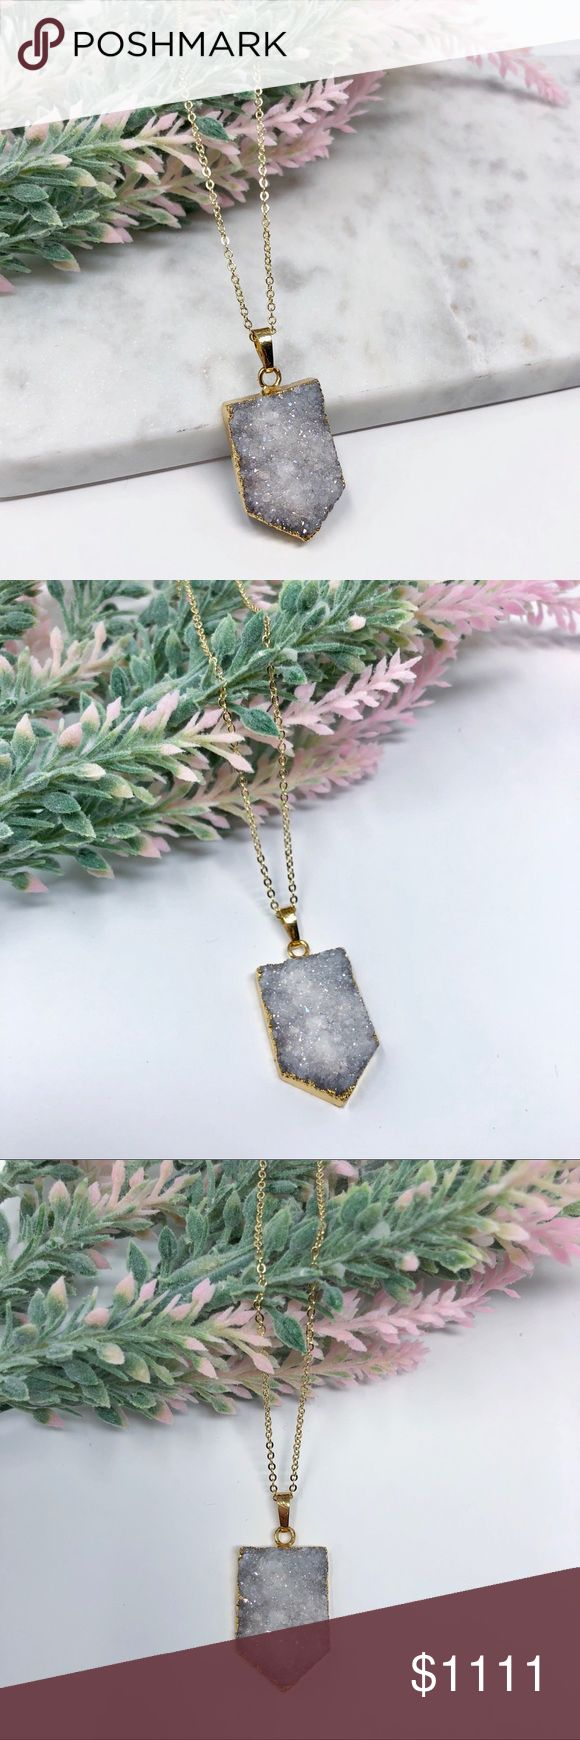 "White Druzy Necklace white druzy necklace featuring natural titanium druzy agate stone on an 18k gold plated chain • chain length 18""   handmade in El Paso, TX Simple Sanctuary Jewelry Necklaces"